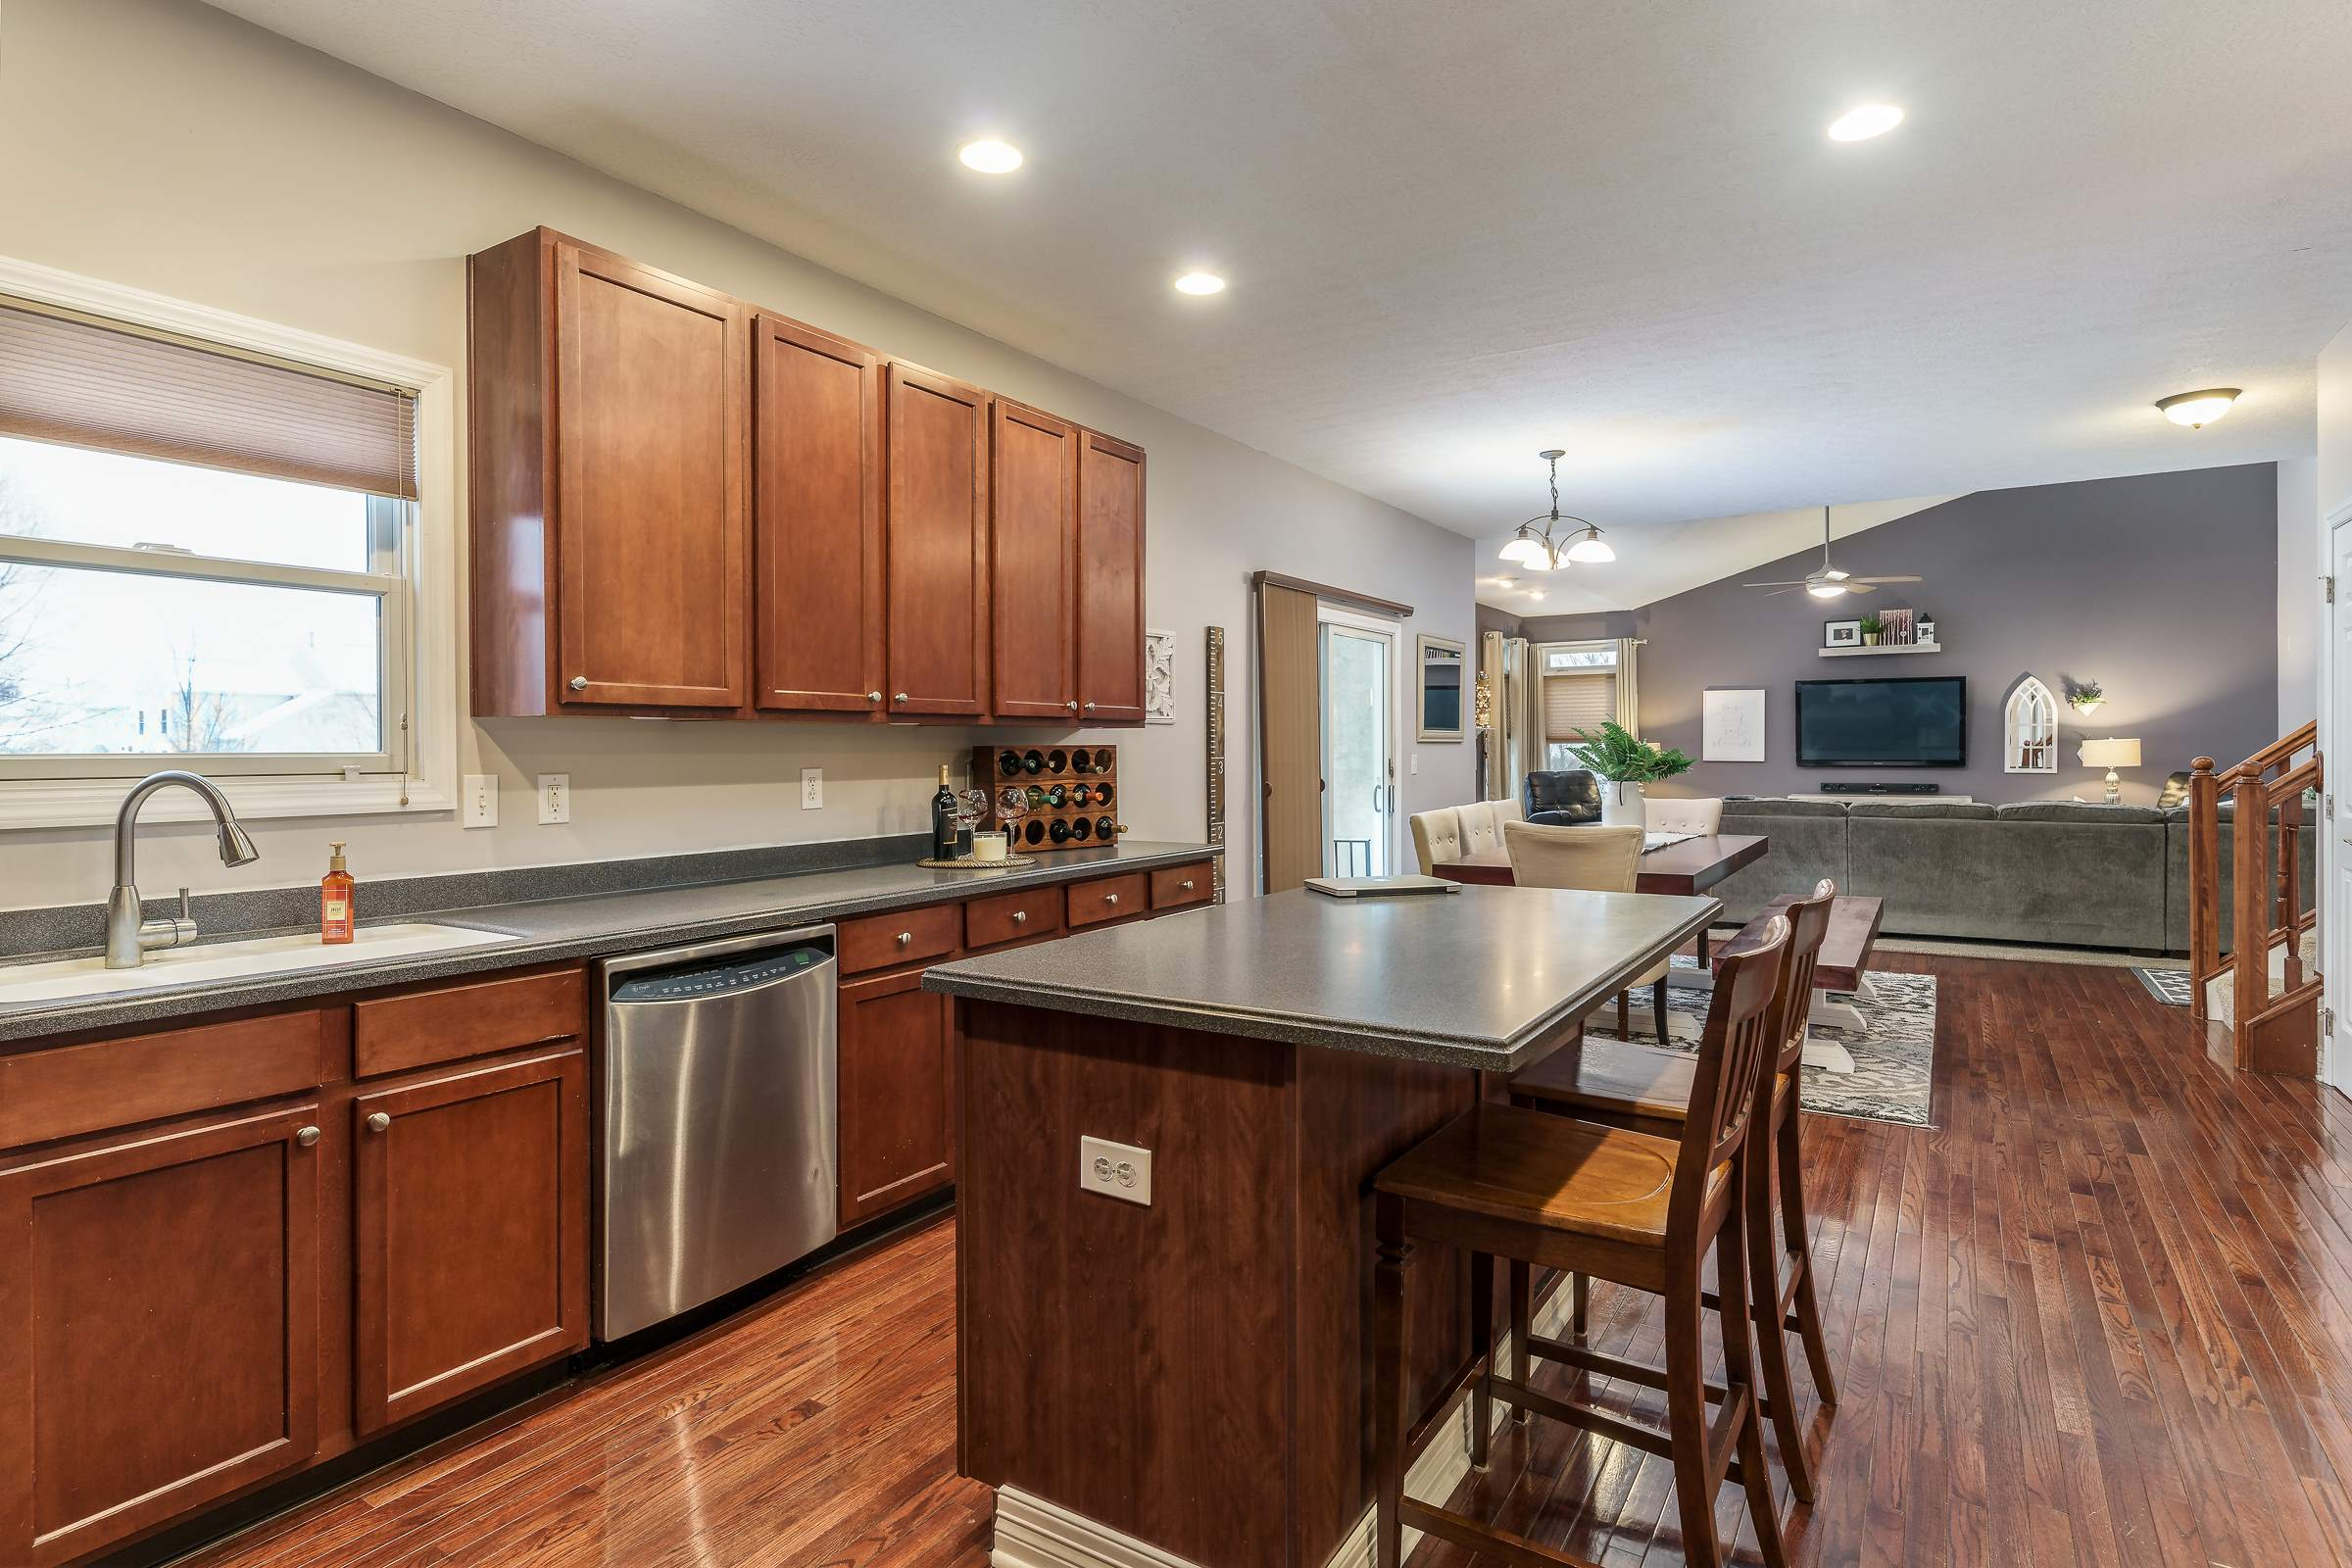 6841 Snapdragon Way, Lewis Center, OH 43035